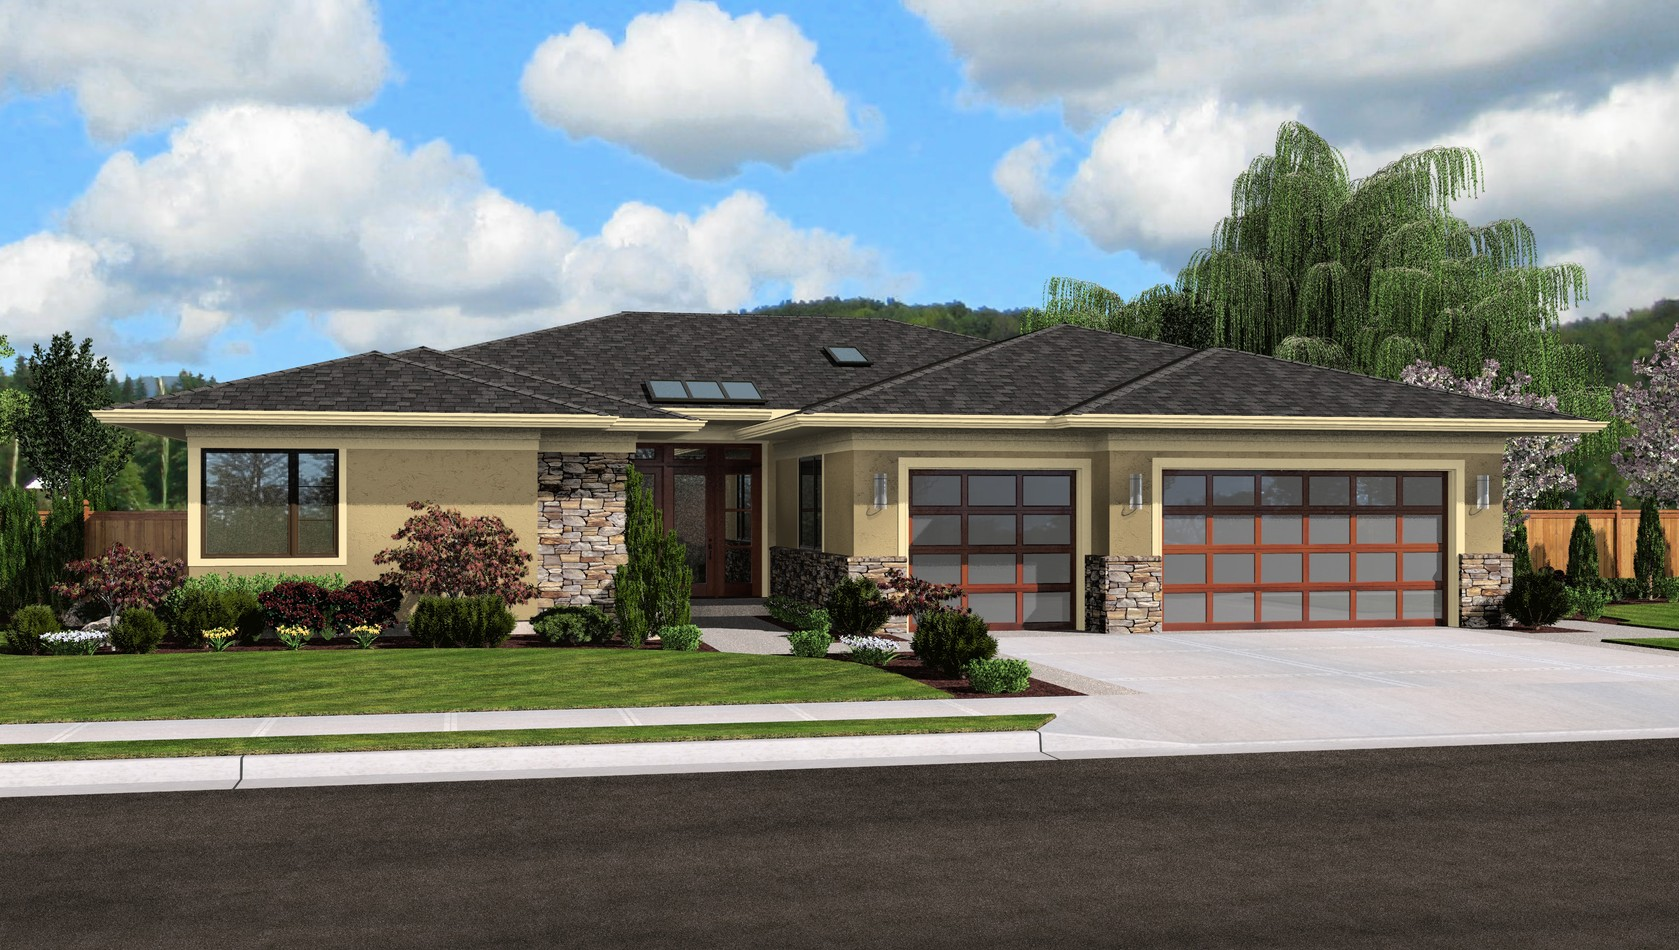 Contemporary house plan 1245 the riverside 2334 sqft 4 - Single story 4 bedroom modern house plans ...